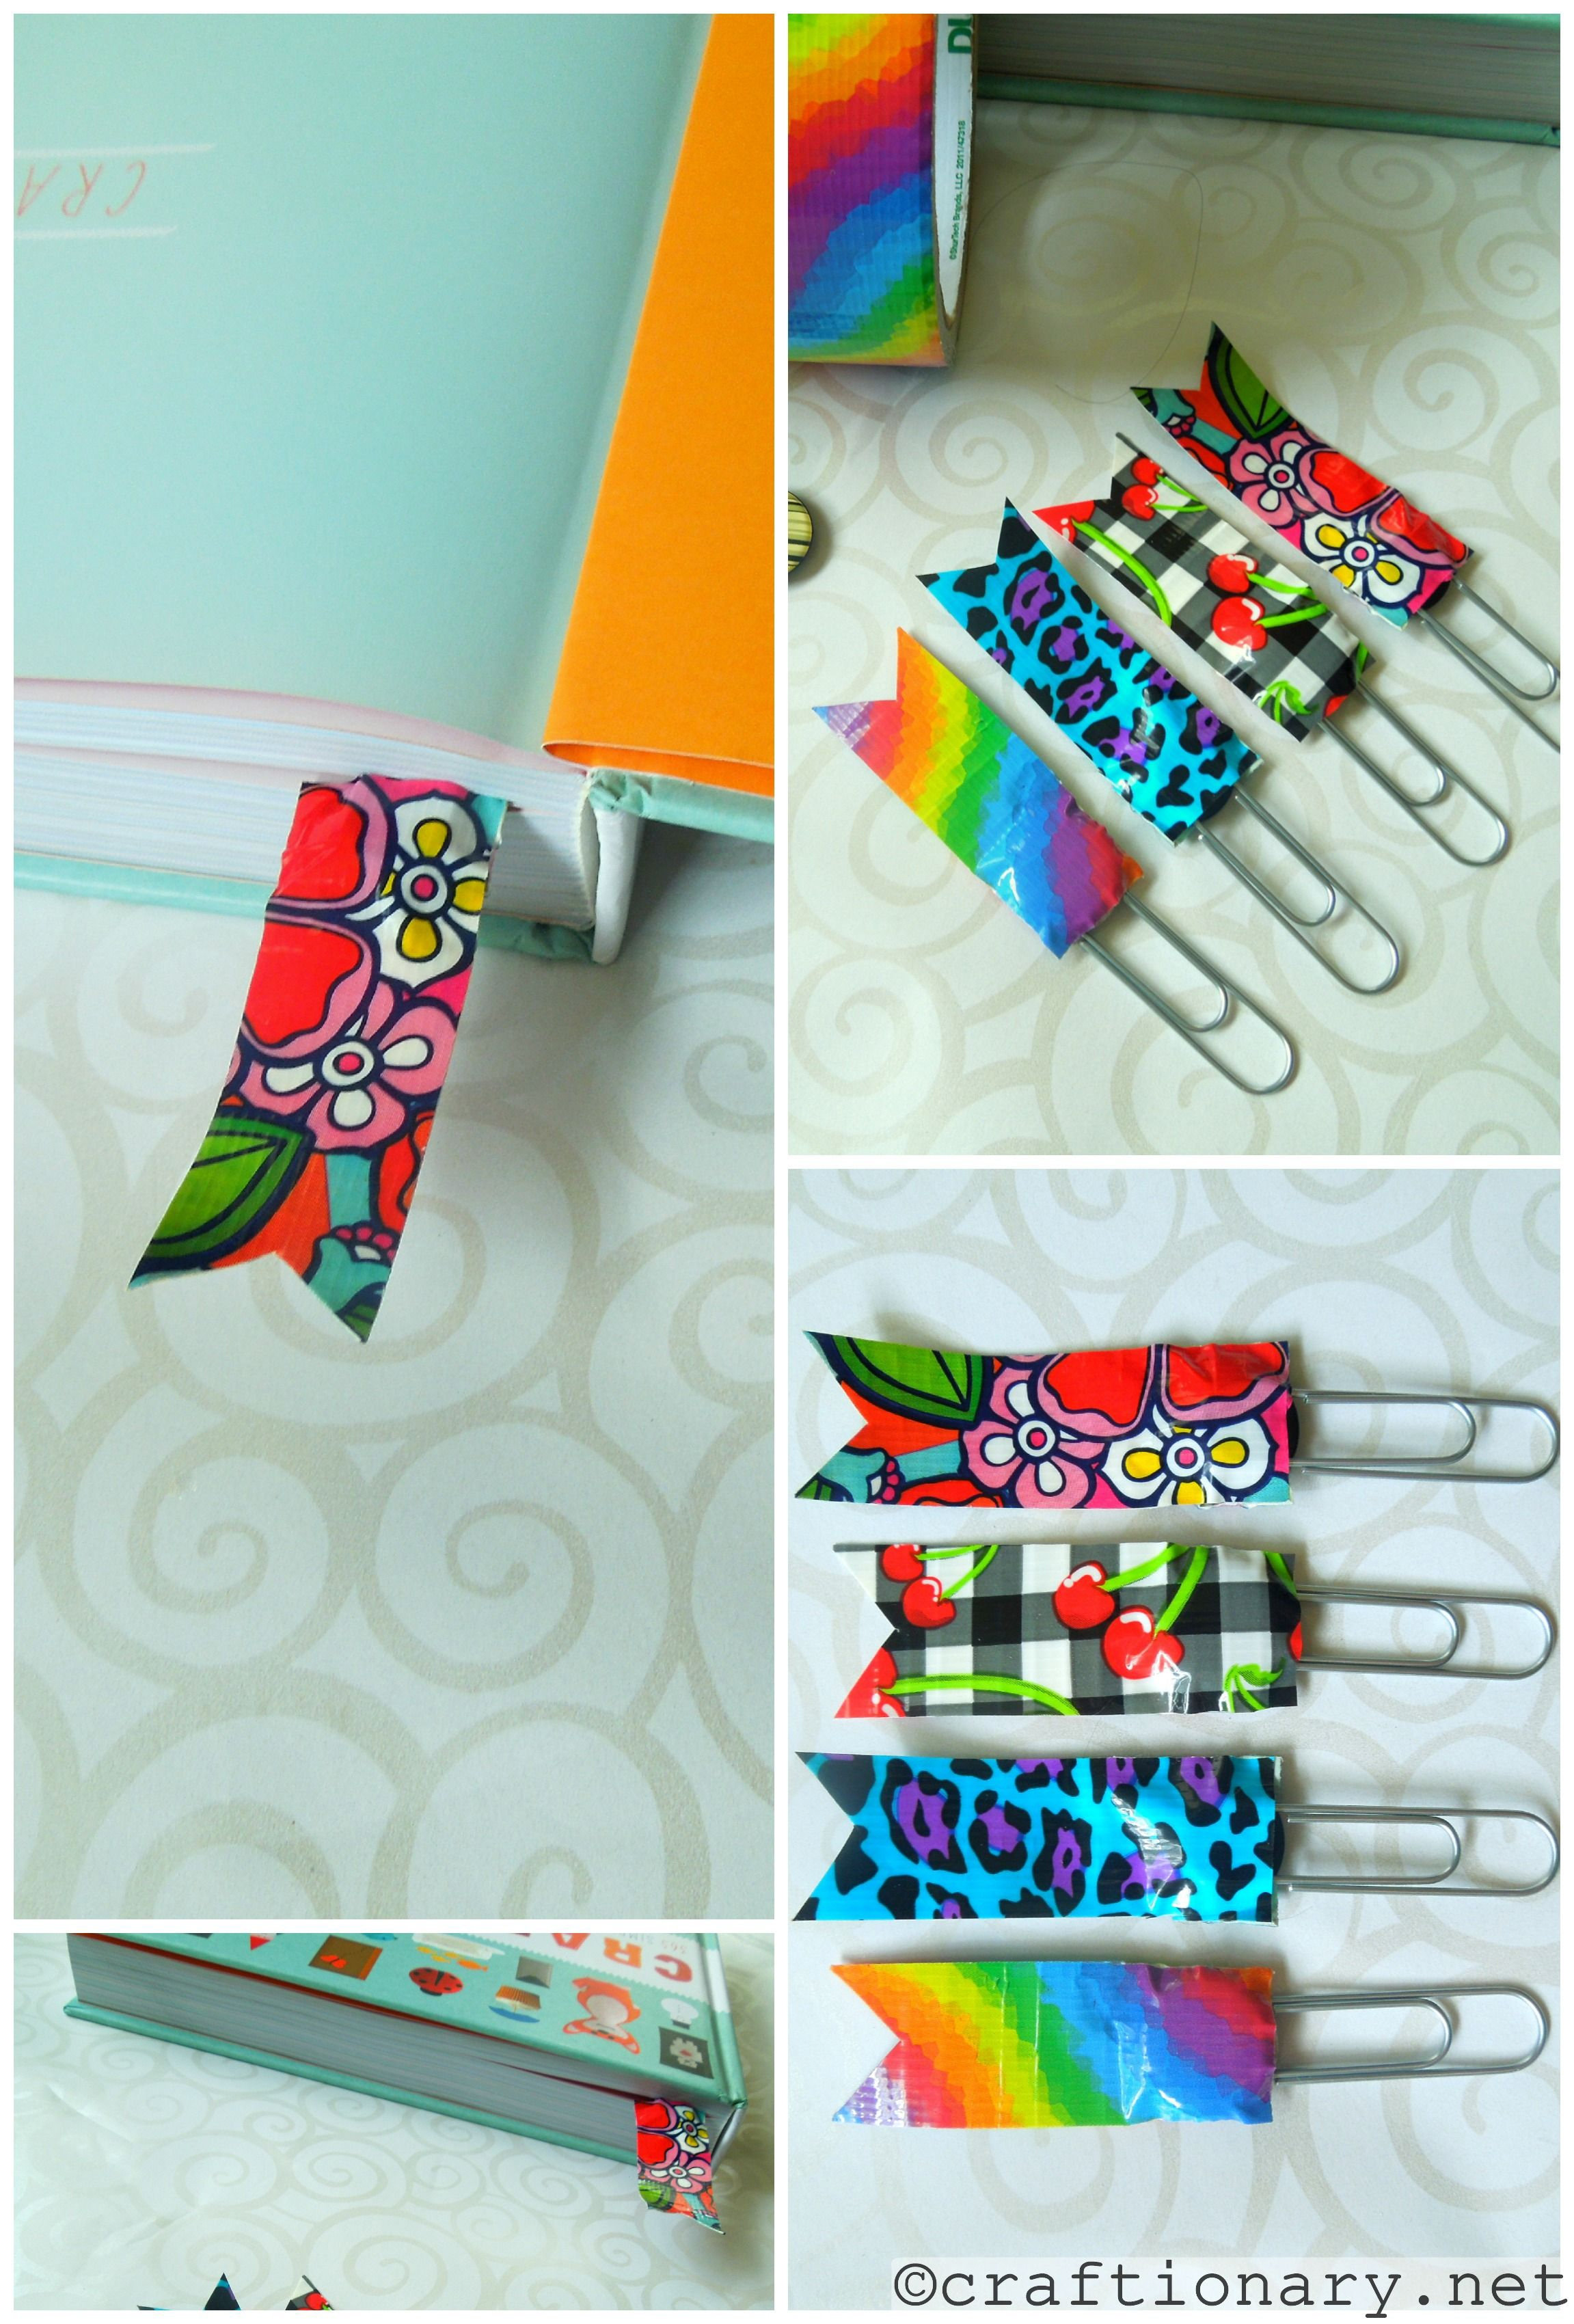 4-Easy Animal Ears headbands from Dollar Store Mom. I hope you enjoyed this list of Duct tape crafts for kids. What is your kids' favorite craft to make with duct tape? Duct tape crafts? Count me in! Thanks for sharing so many fun ideas, and for including by Duct Tape Flag. Heather Meek June 22, at pm - Reply.